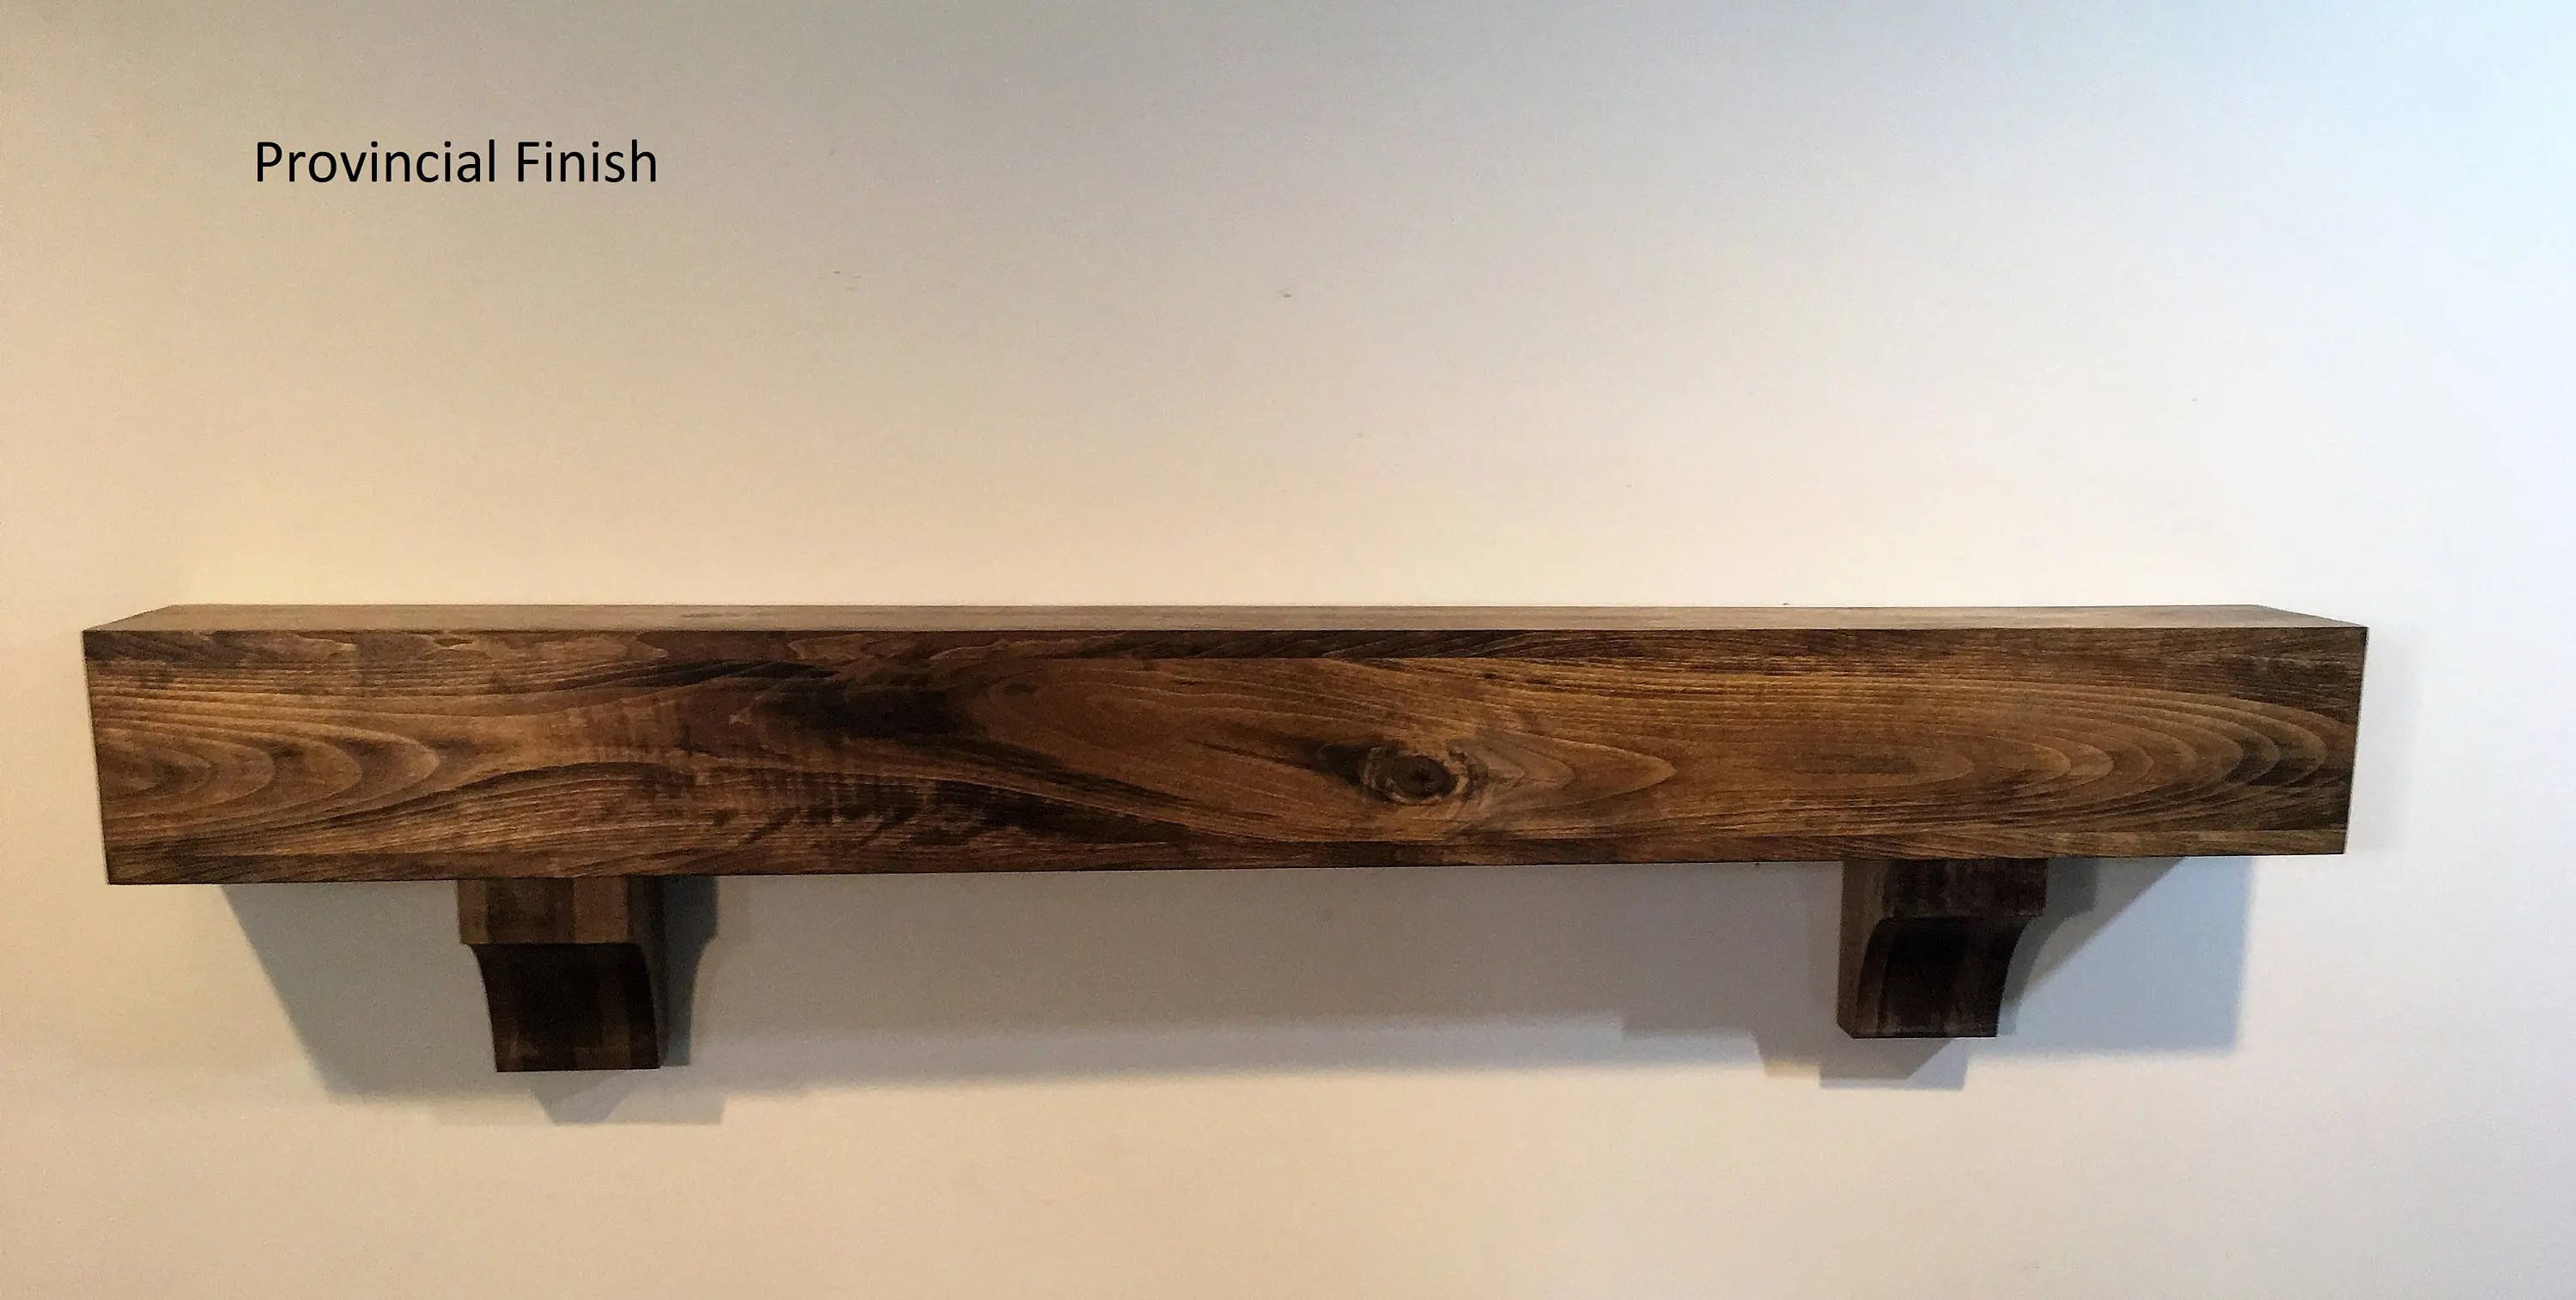 Faux Wood Beam Fireplace Mantels Uk Provincial 8